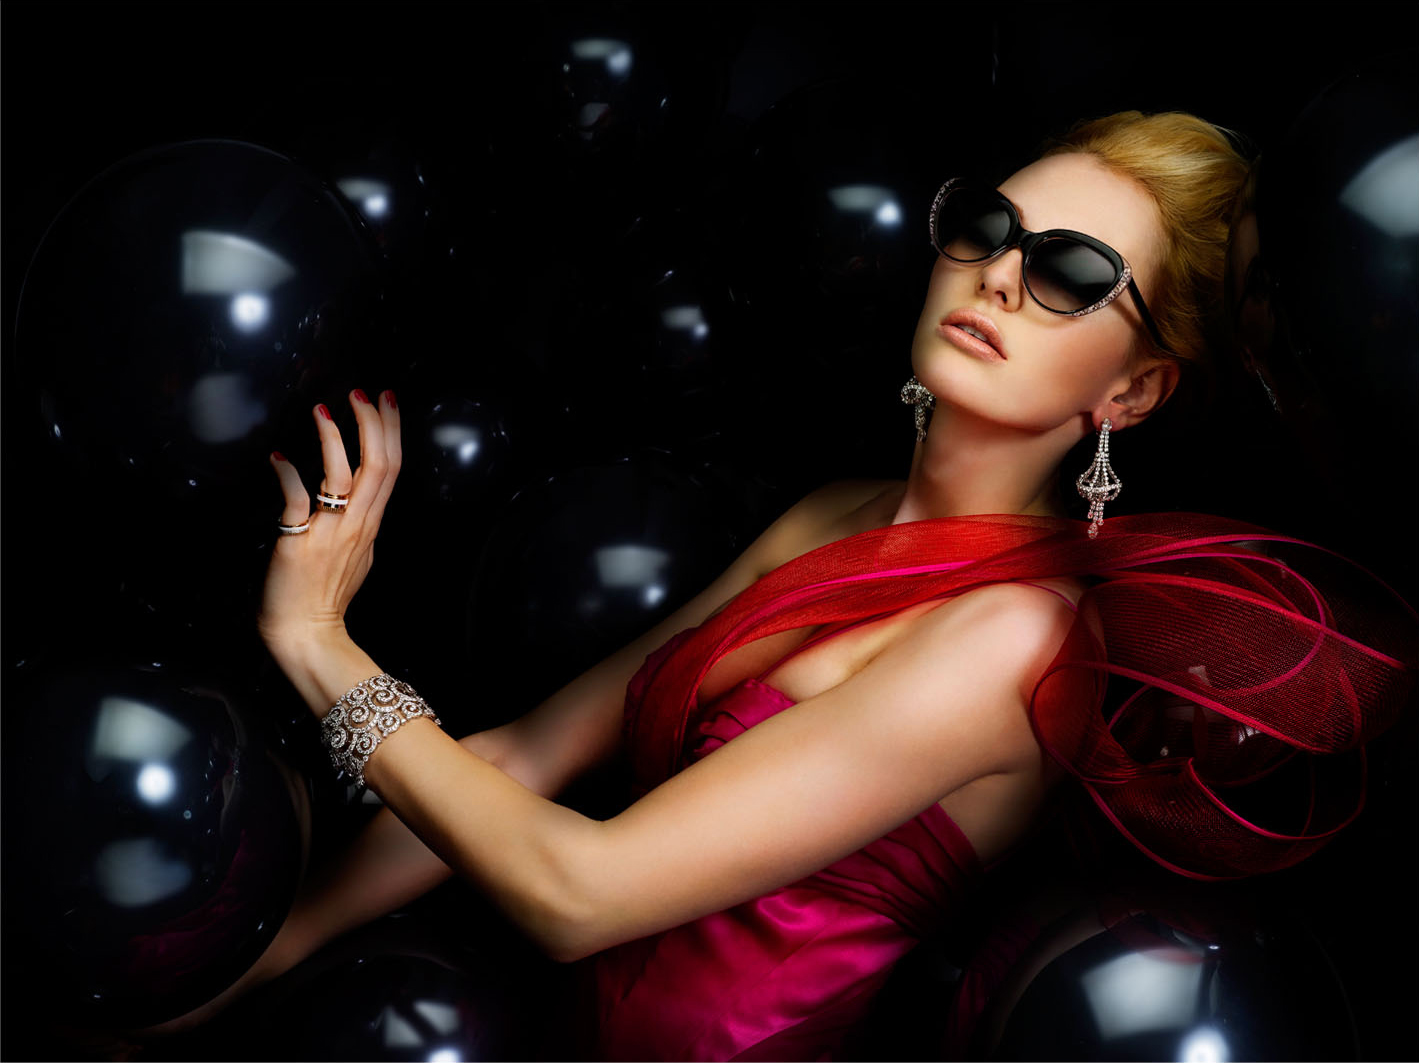 Cartier #fashion jewelry #hong kong Jewelry photographer # fashion photography #gordon lund #frackey